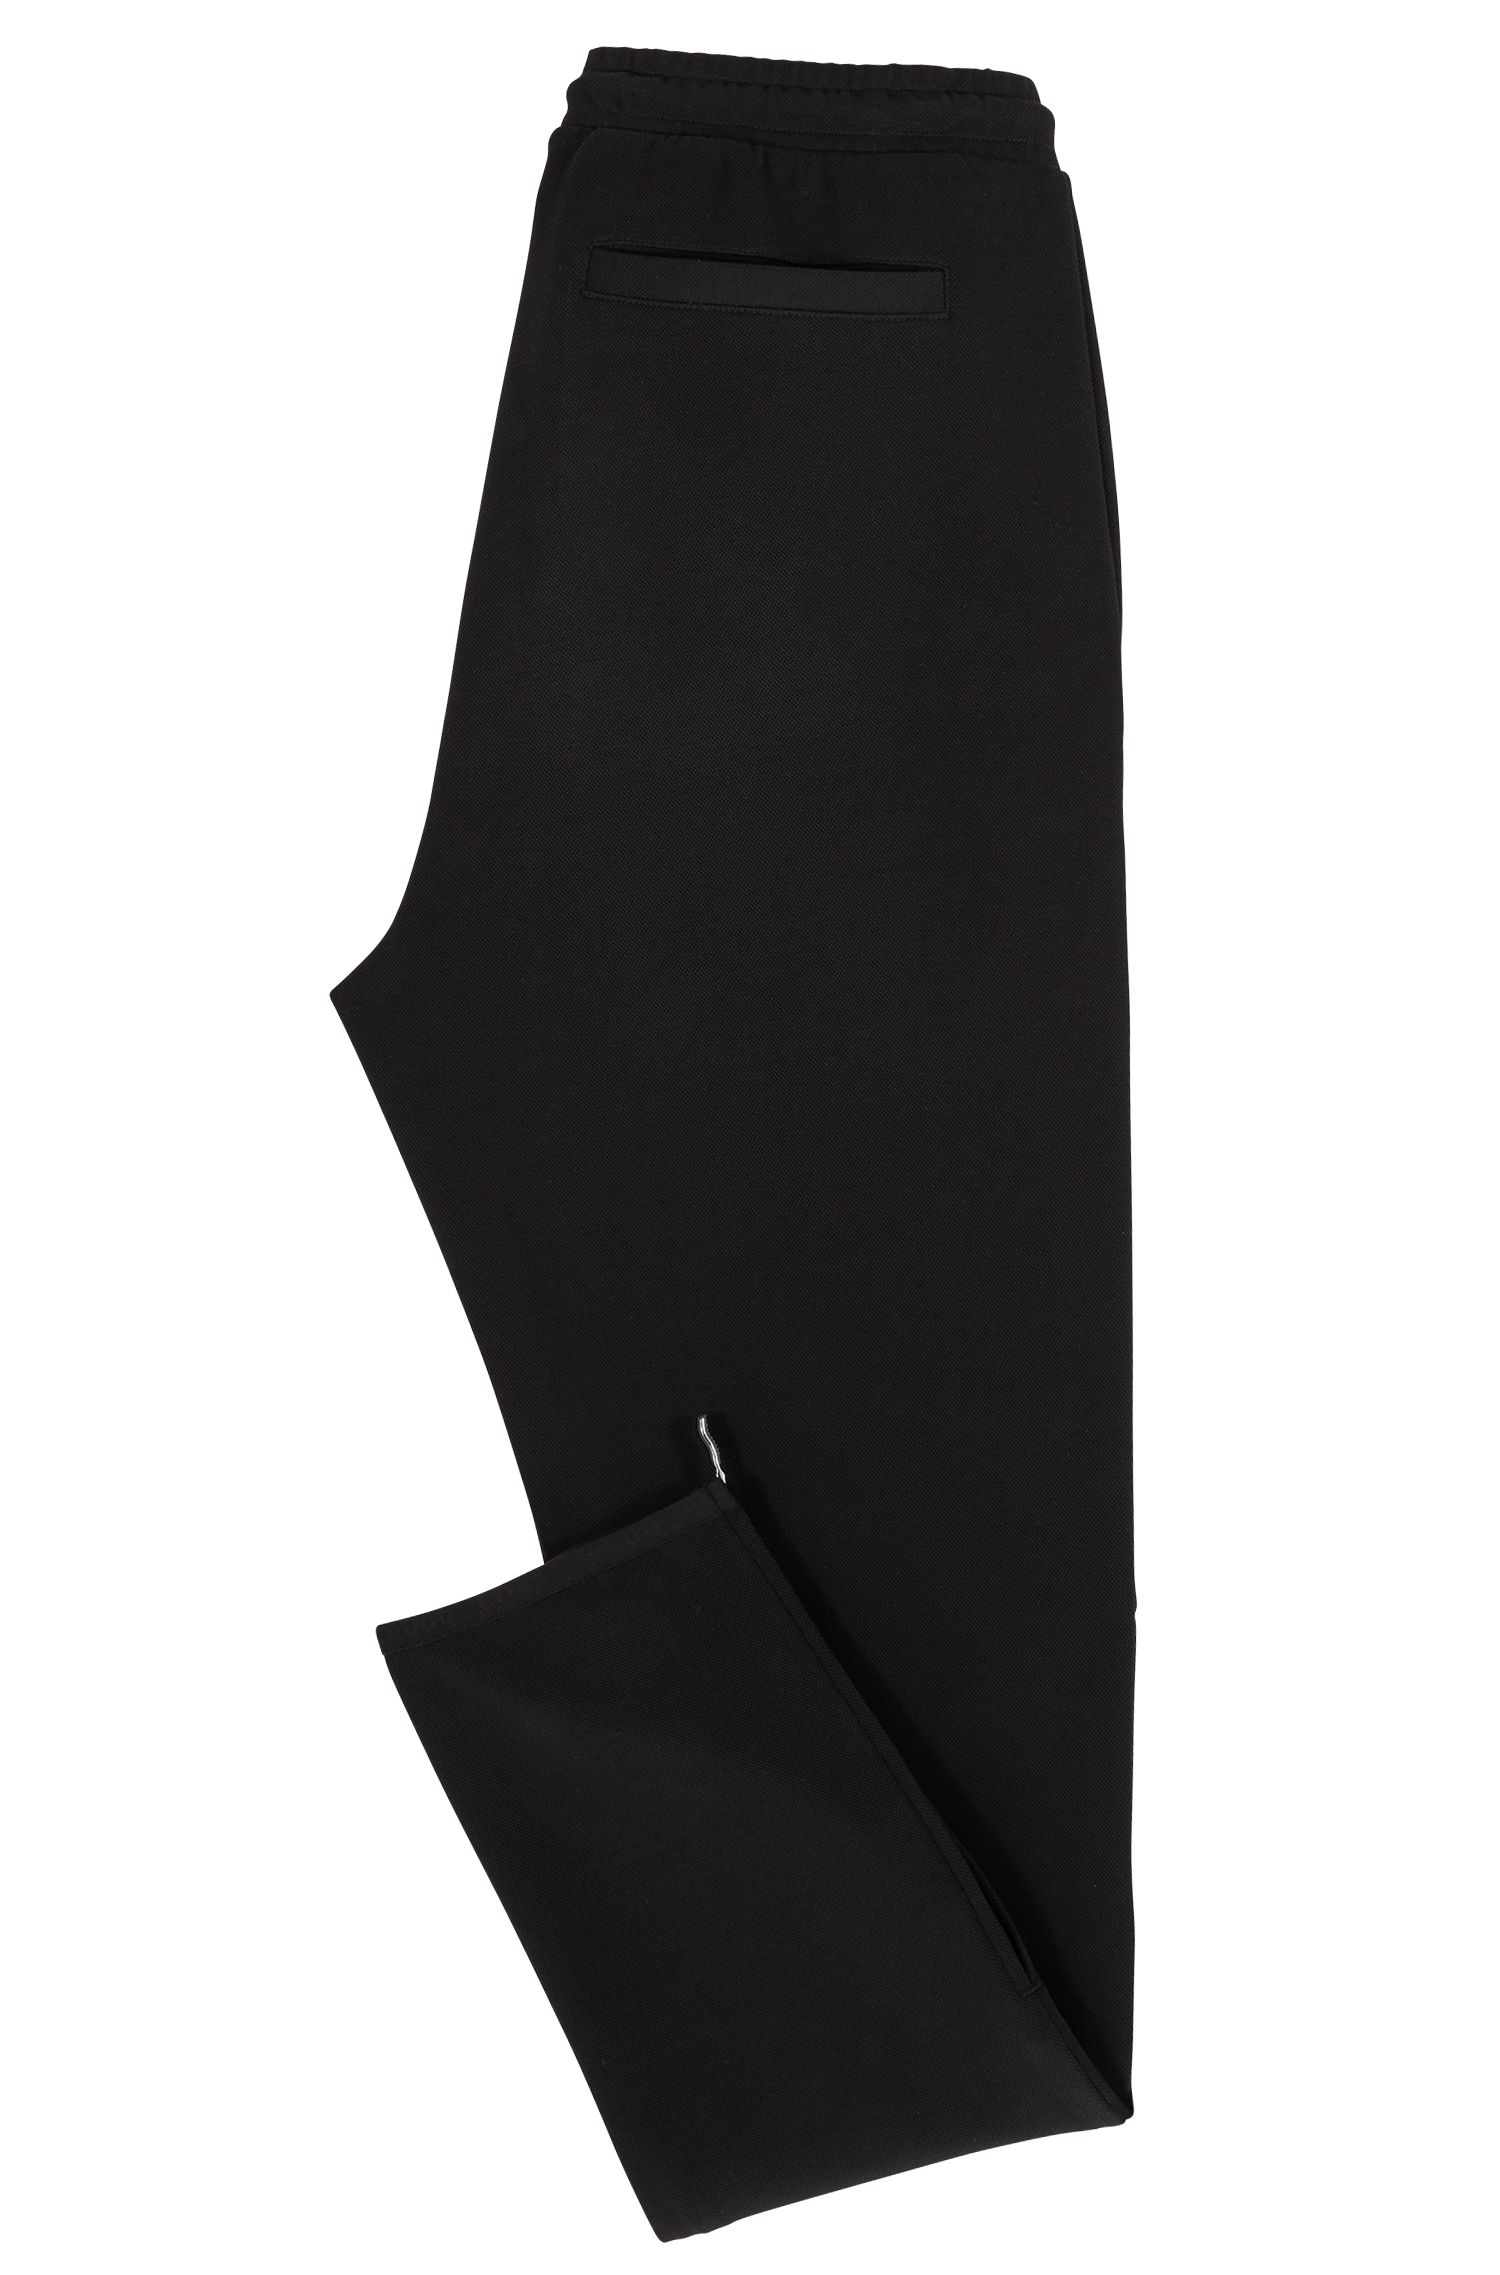 Slim-fit pants in stretch jersey with zipper details, Black